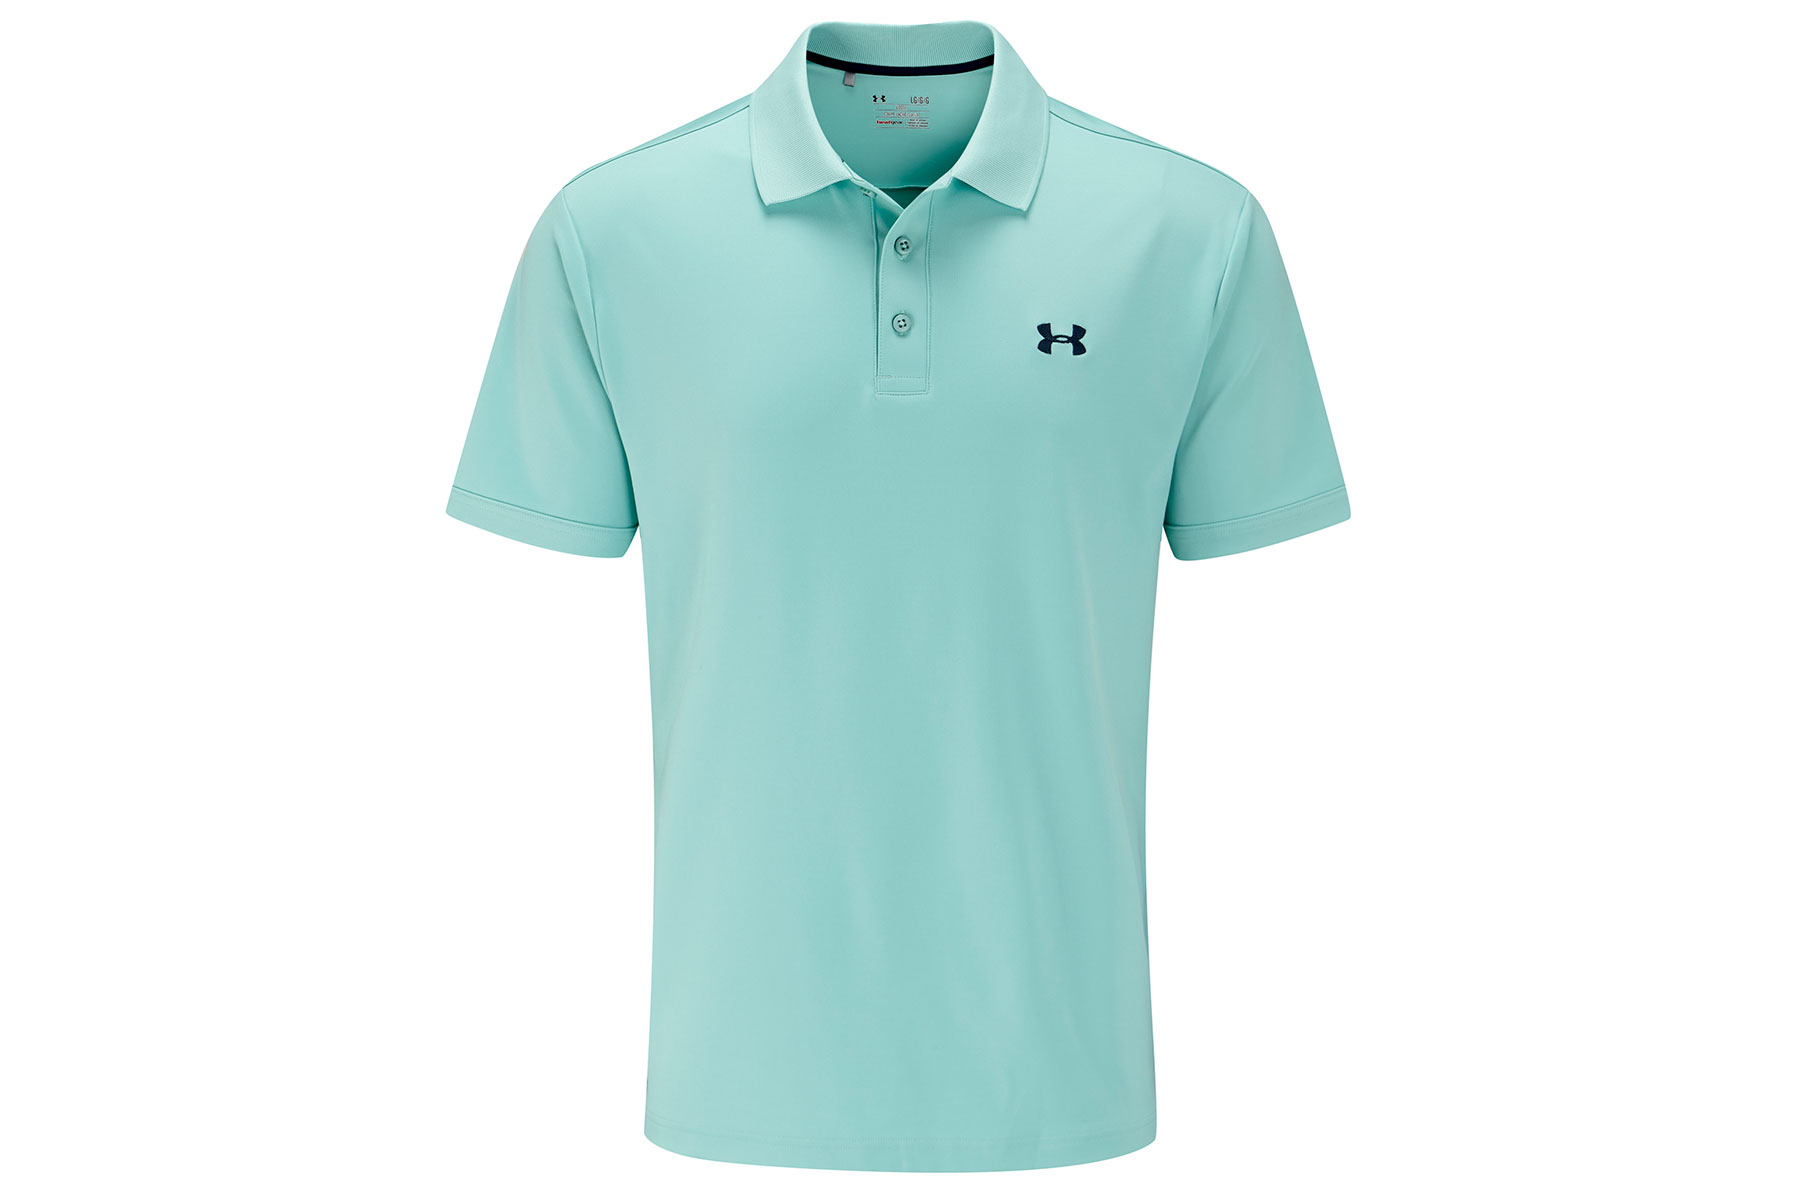 Under armour performance polo shirt online golf for Polo golf performance shirt